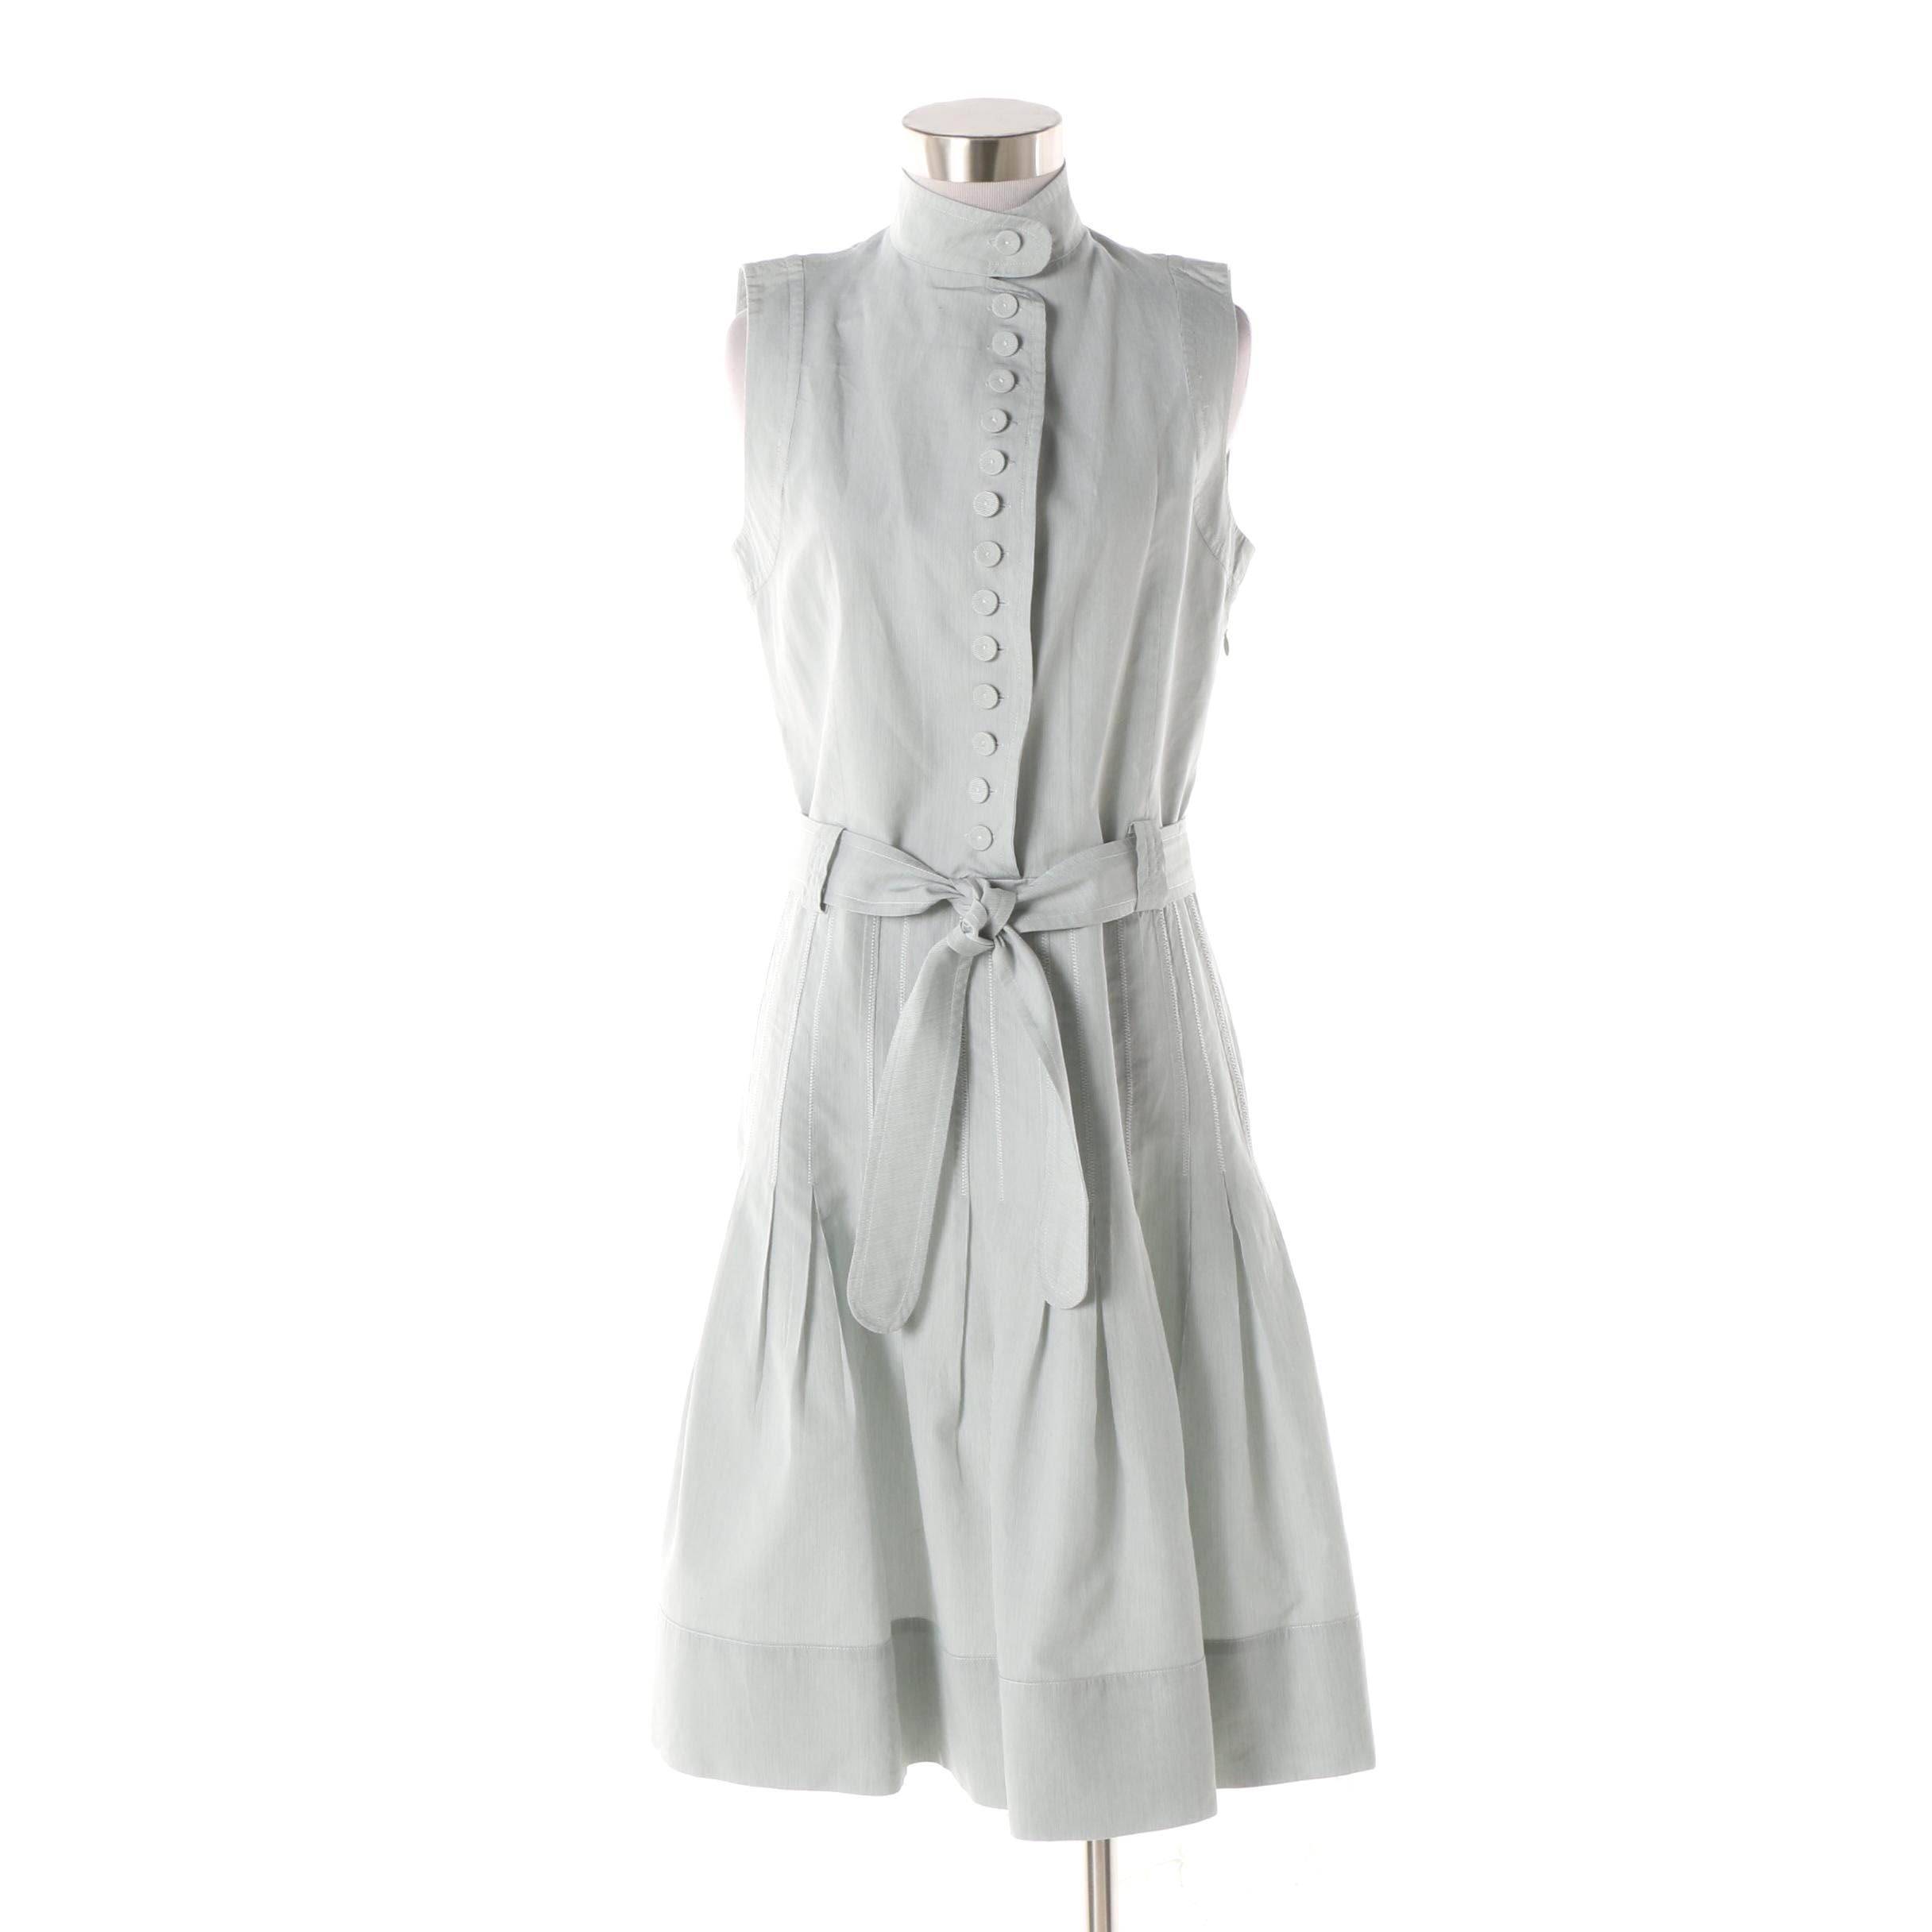 A-K-R-I-S Punto Cotton and Silk Green Seersucker Sleeveless Dress